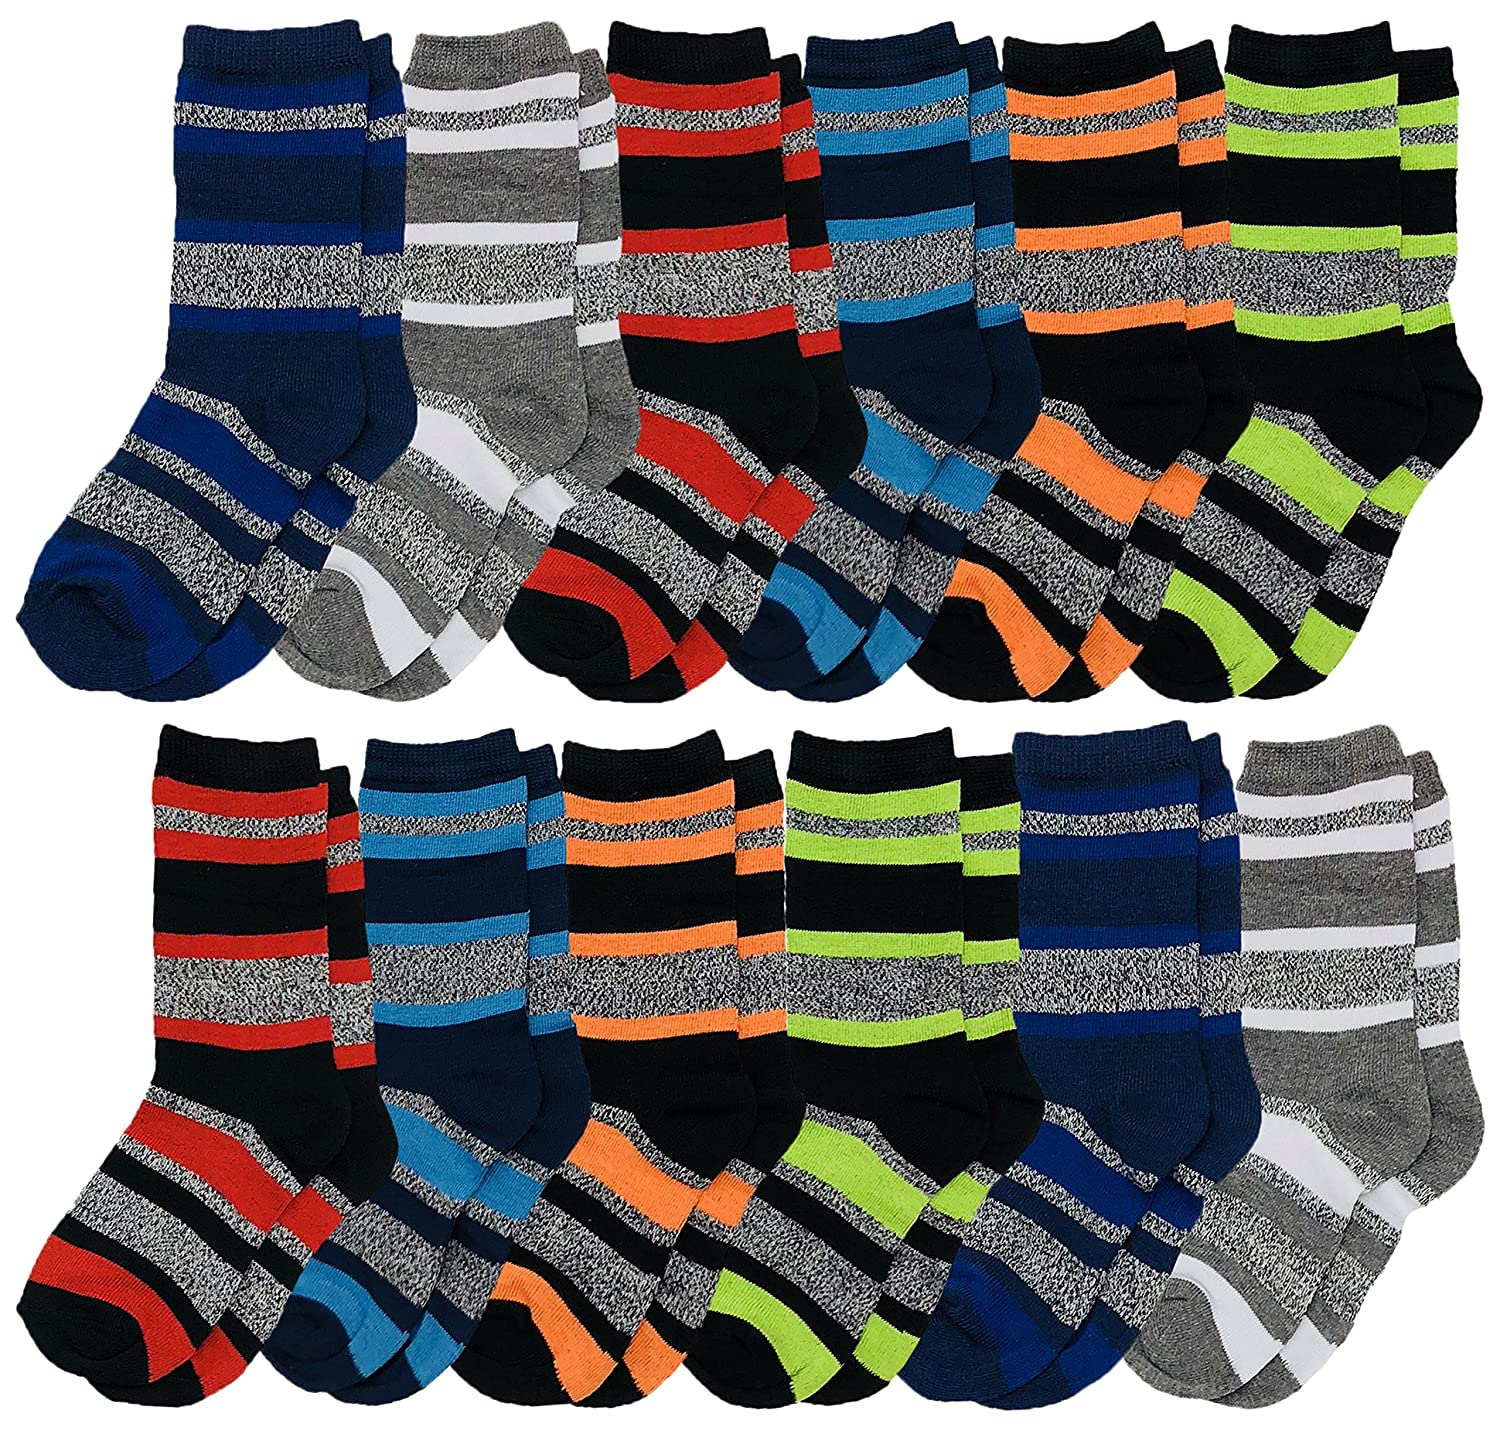 424e08a461f2 CUTE BOYS DRESS SOCKS: Get 6 or 12 pairs of stylish dress socks to keep the  boys looking sharp. Whether it's for a wedding, an upcoming event, ...